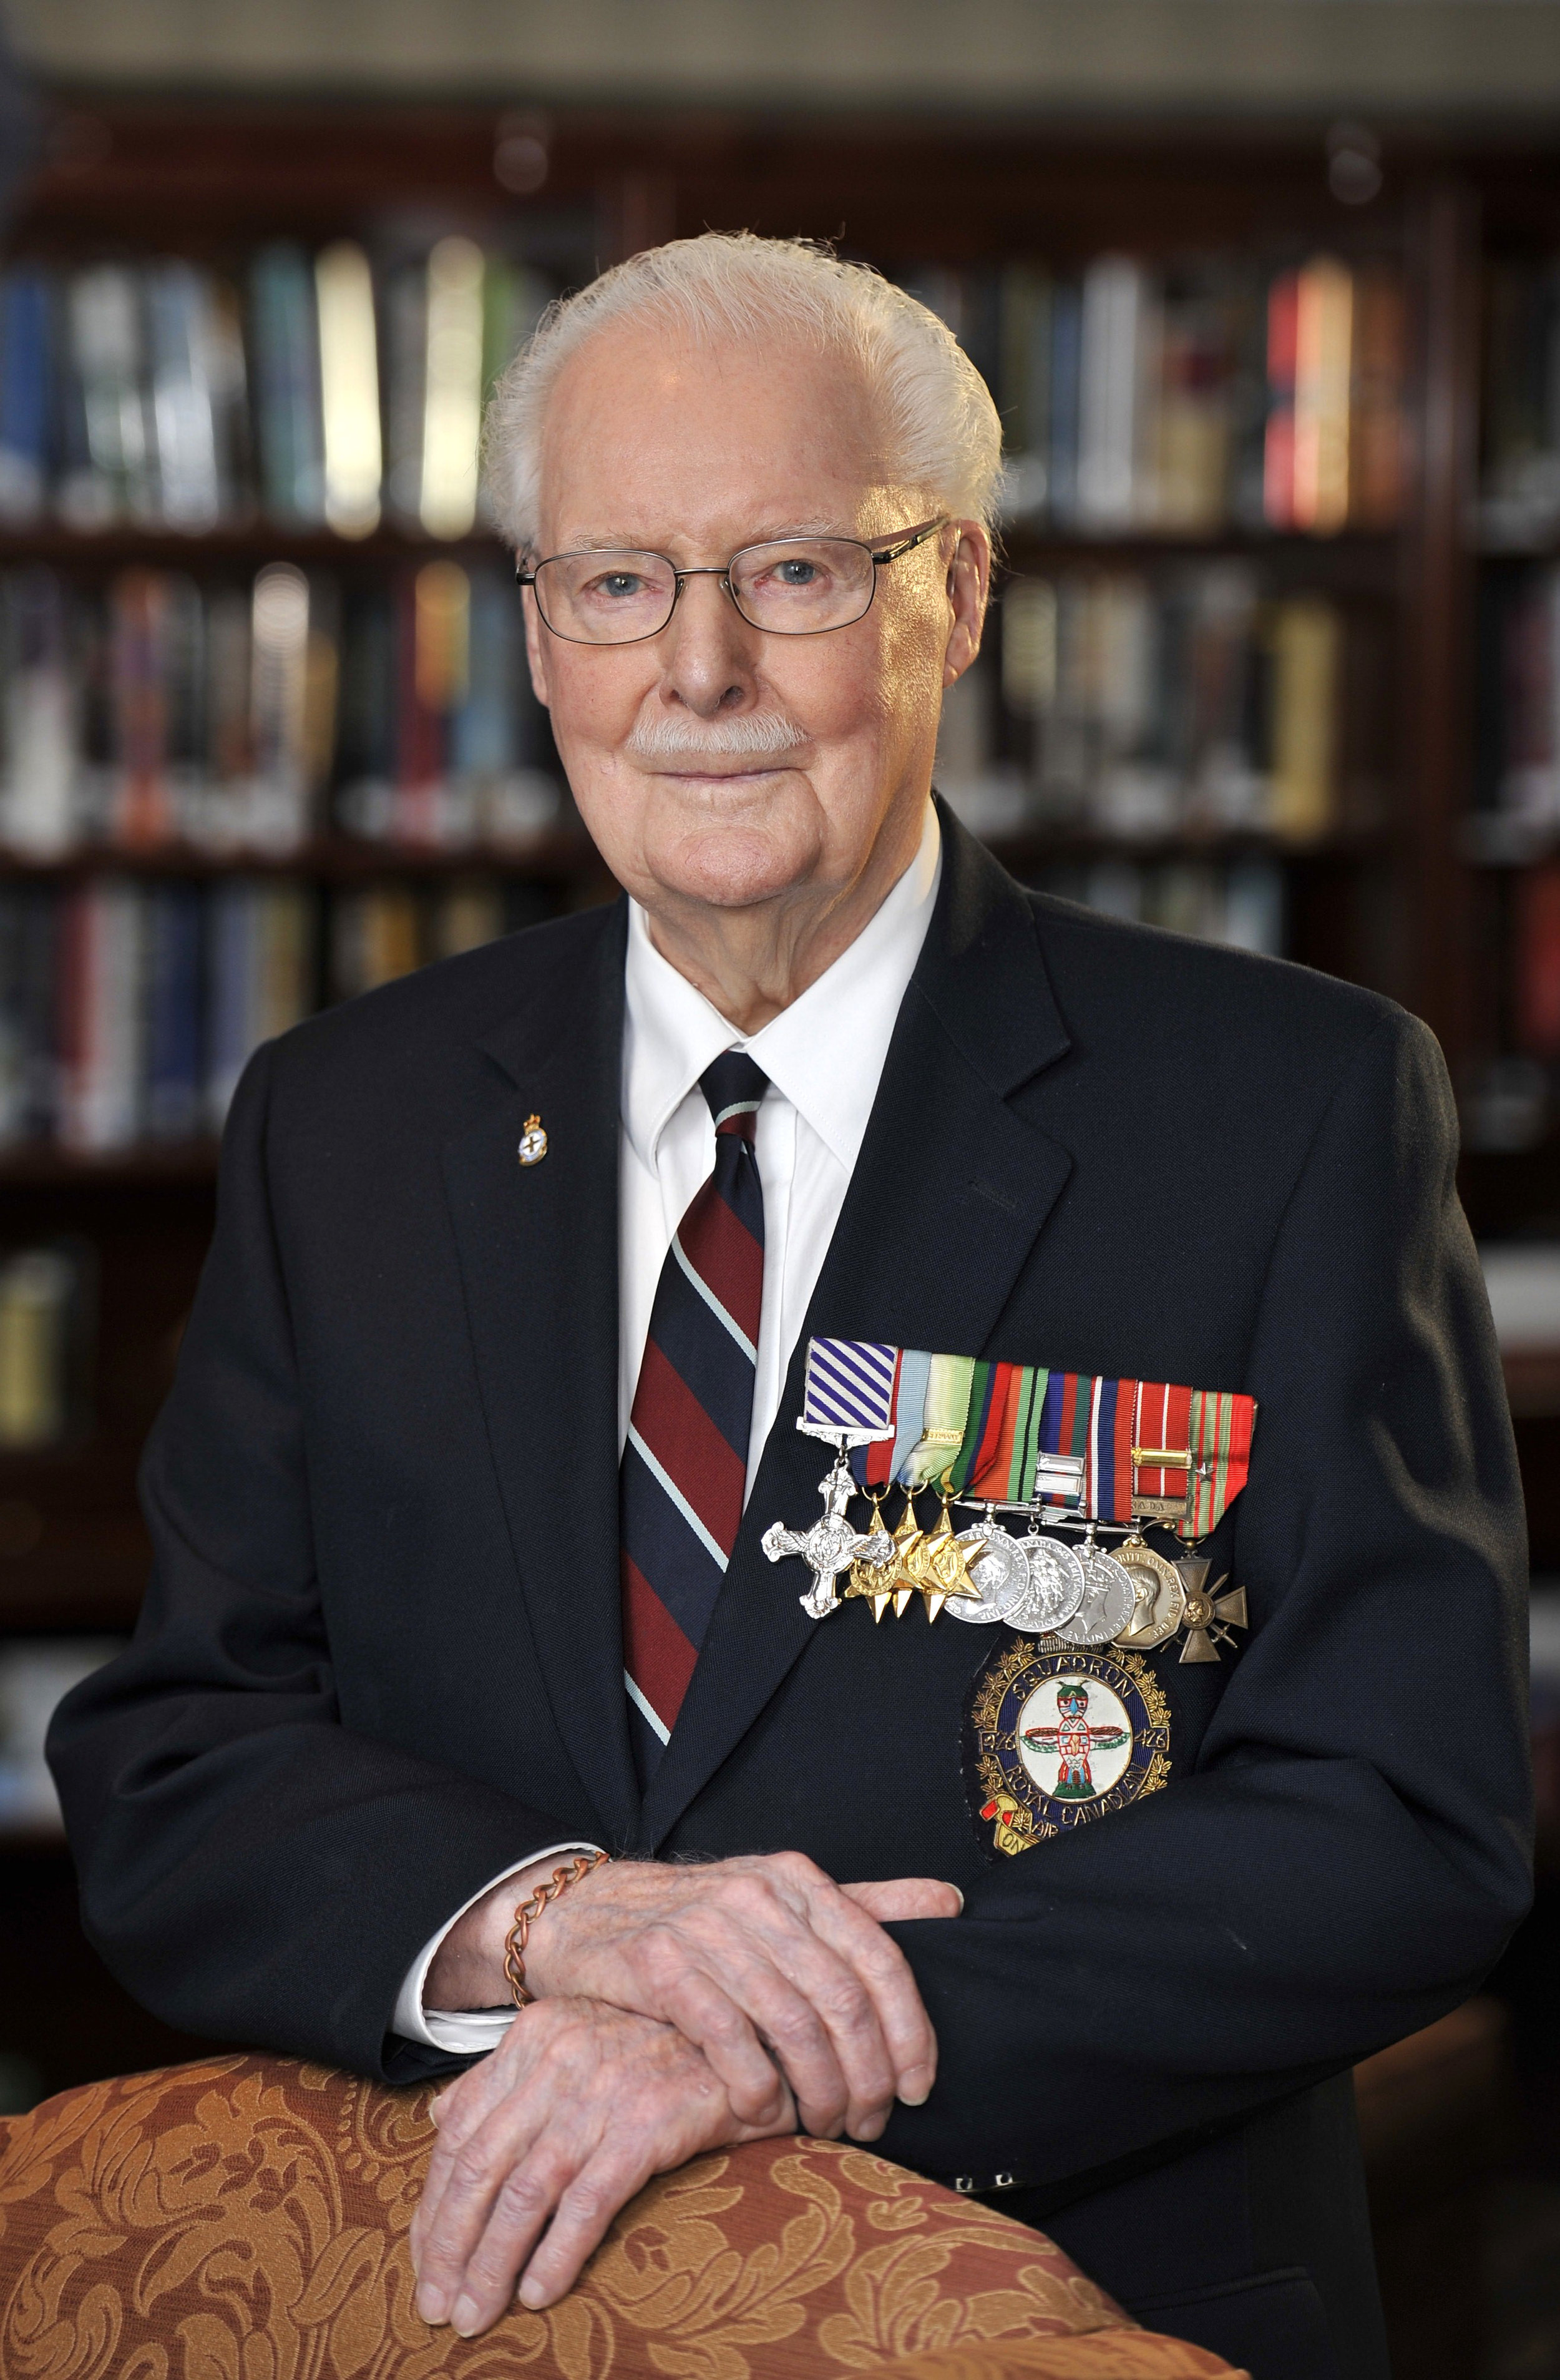 "Clifford Murray ""Blackie"" Black served as a Lancaster pilot with the RCAF's No. 419 Squadron overseas, earning the Distinguished Flying Cross and the French Croix de Guerre avec étoile de Vermeil (Silver Star) for his service. He retired from the RCAF in 1968. Black died at the age of 99 on April 1, 2016. While in hospital, Cliff was again on Old Settler Mountain, telling the nursing staff of the harrowing climb and of the grizzly, which was never far from his mind. (don molyneaux)"